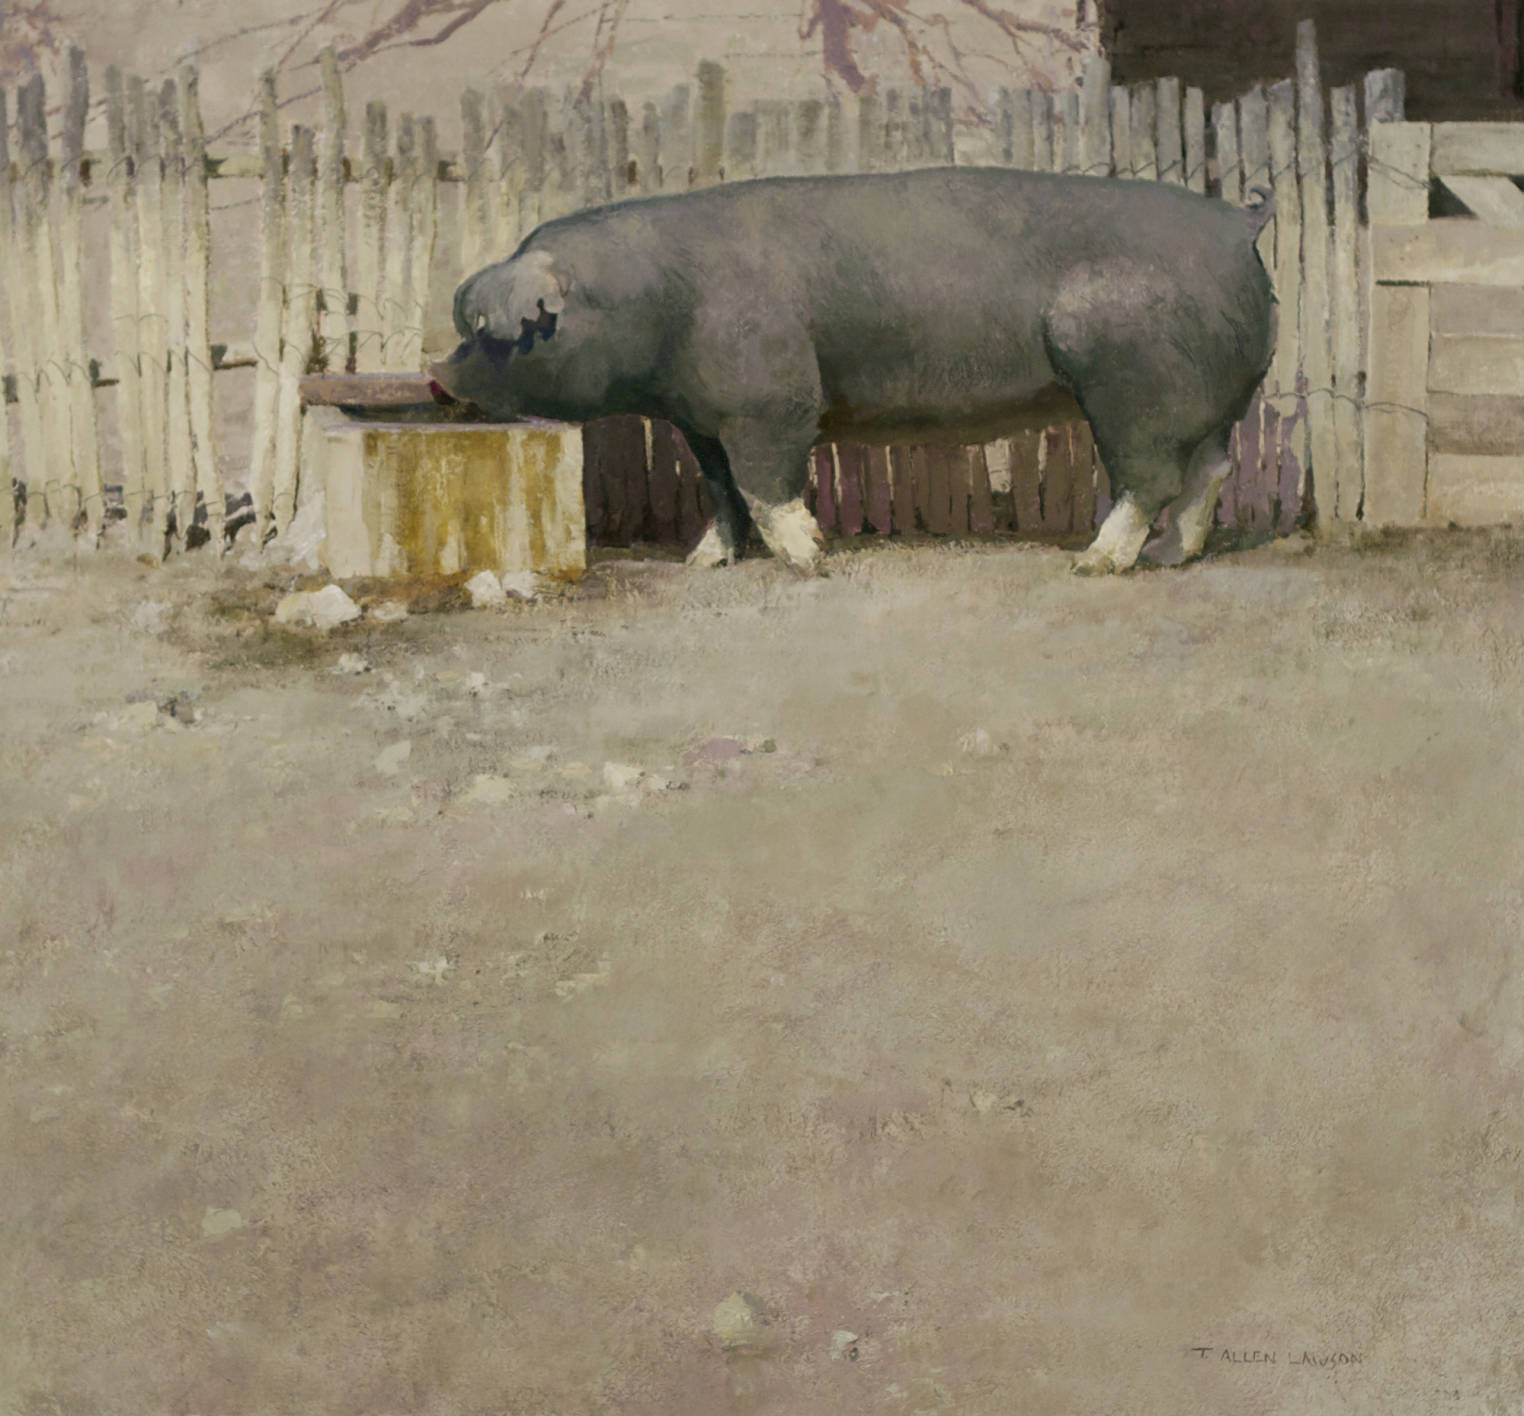 Pig, oil on linen, 26 x 28 in.